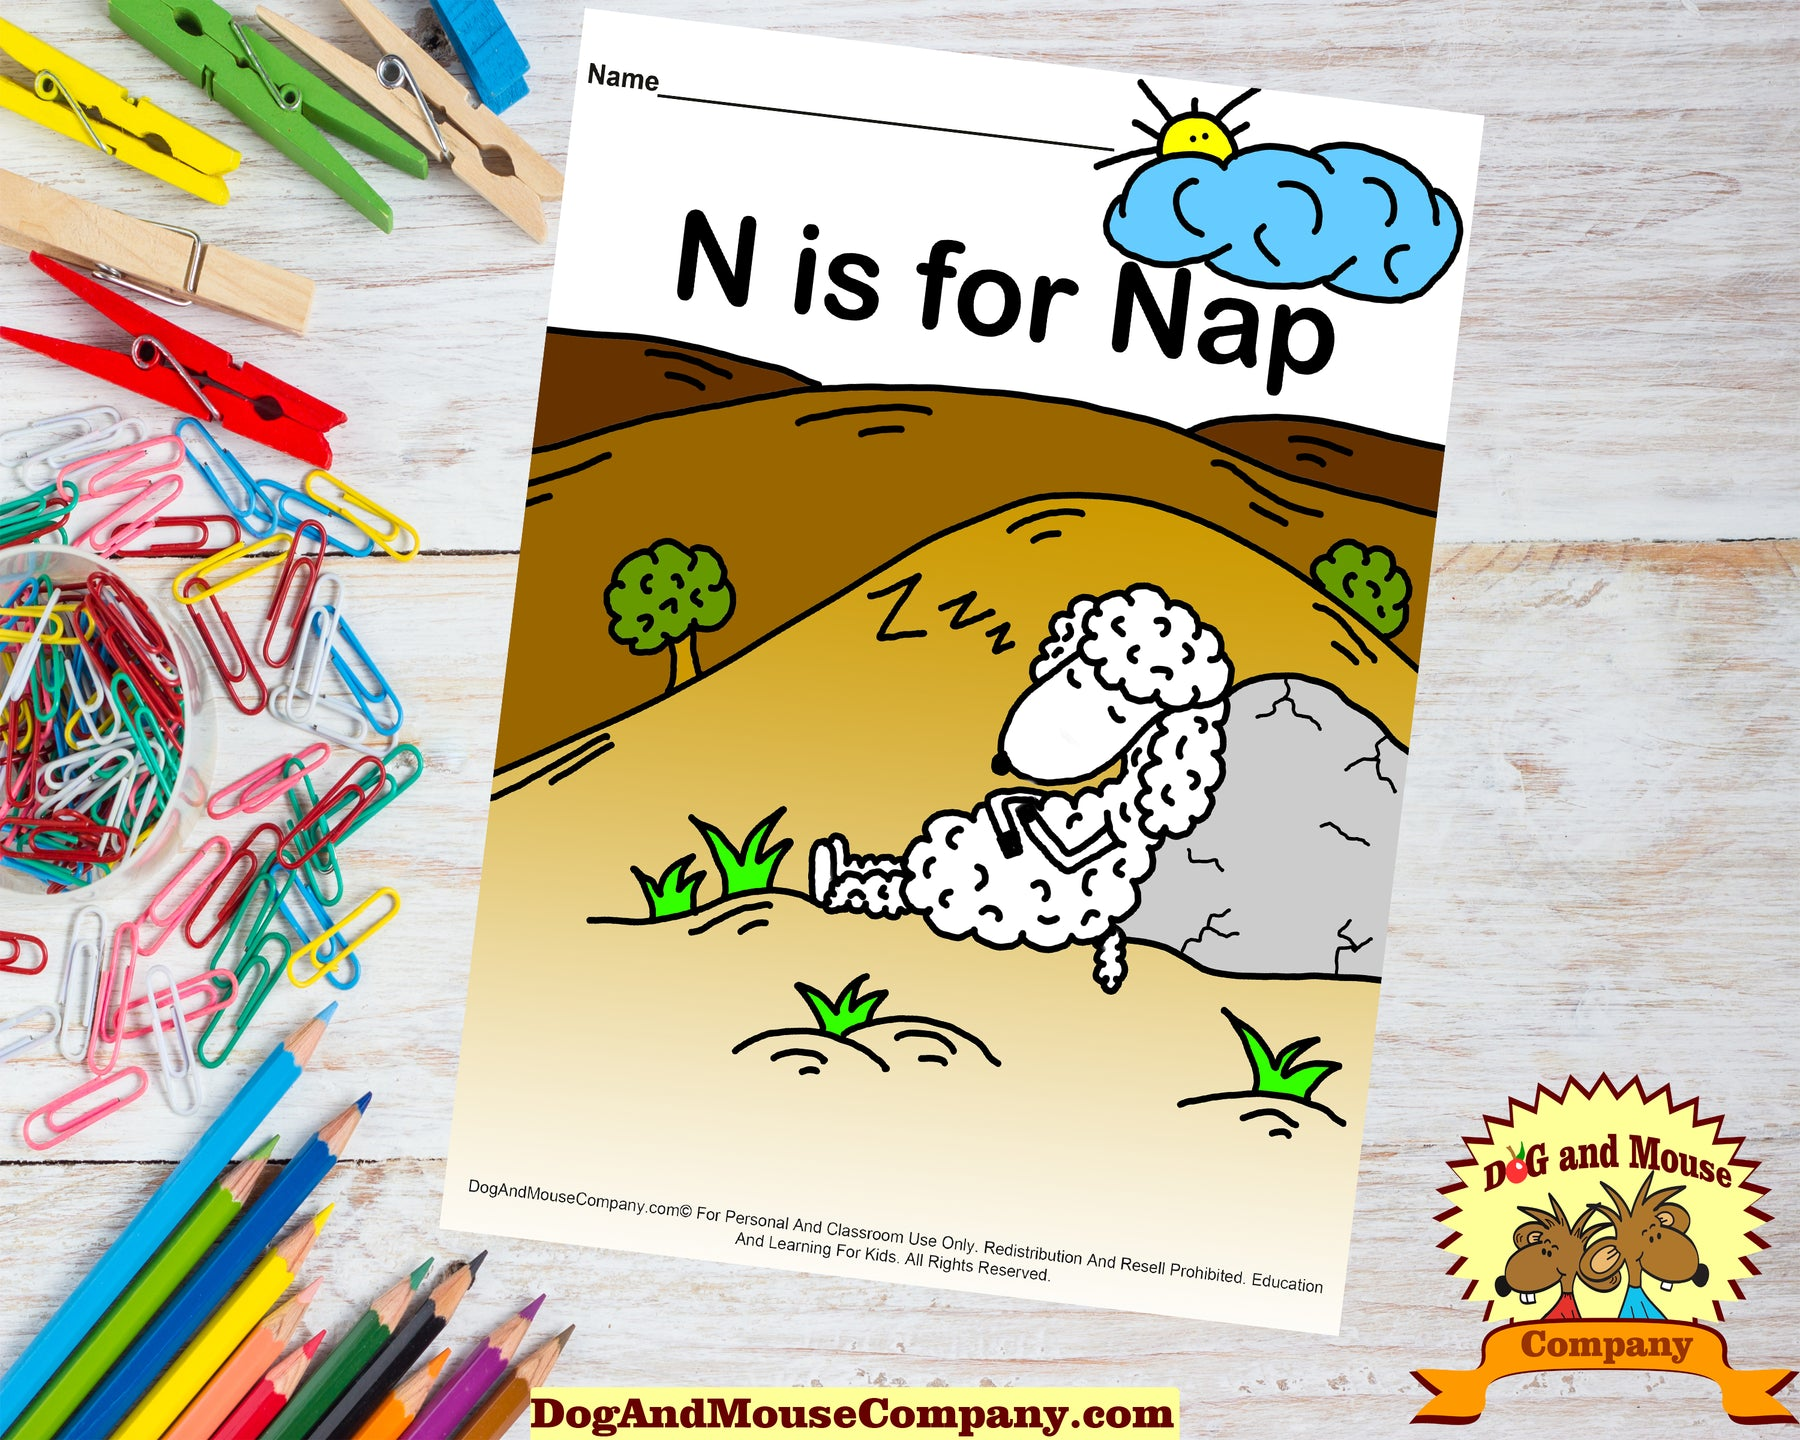 N is for Nap colored page template worksheet printable by dogandmousecompany.com